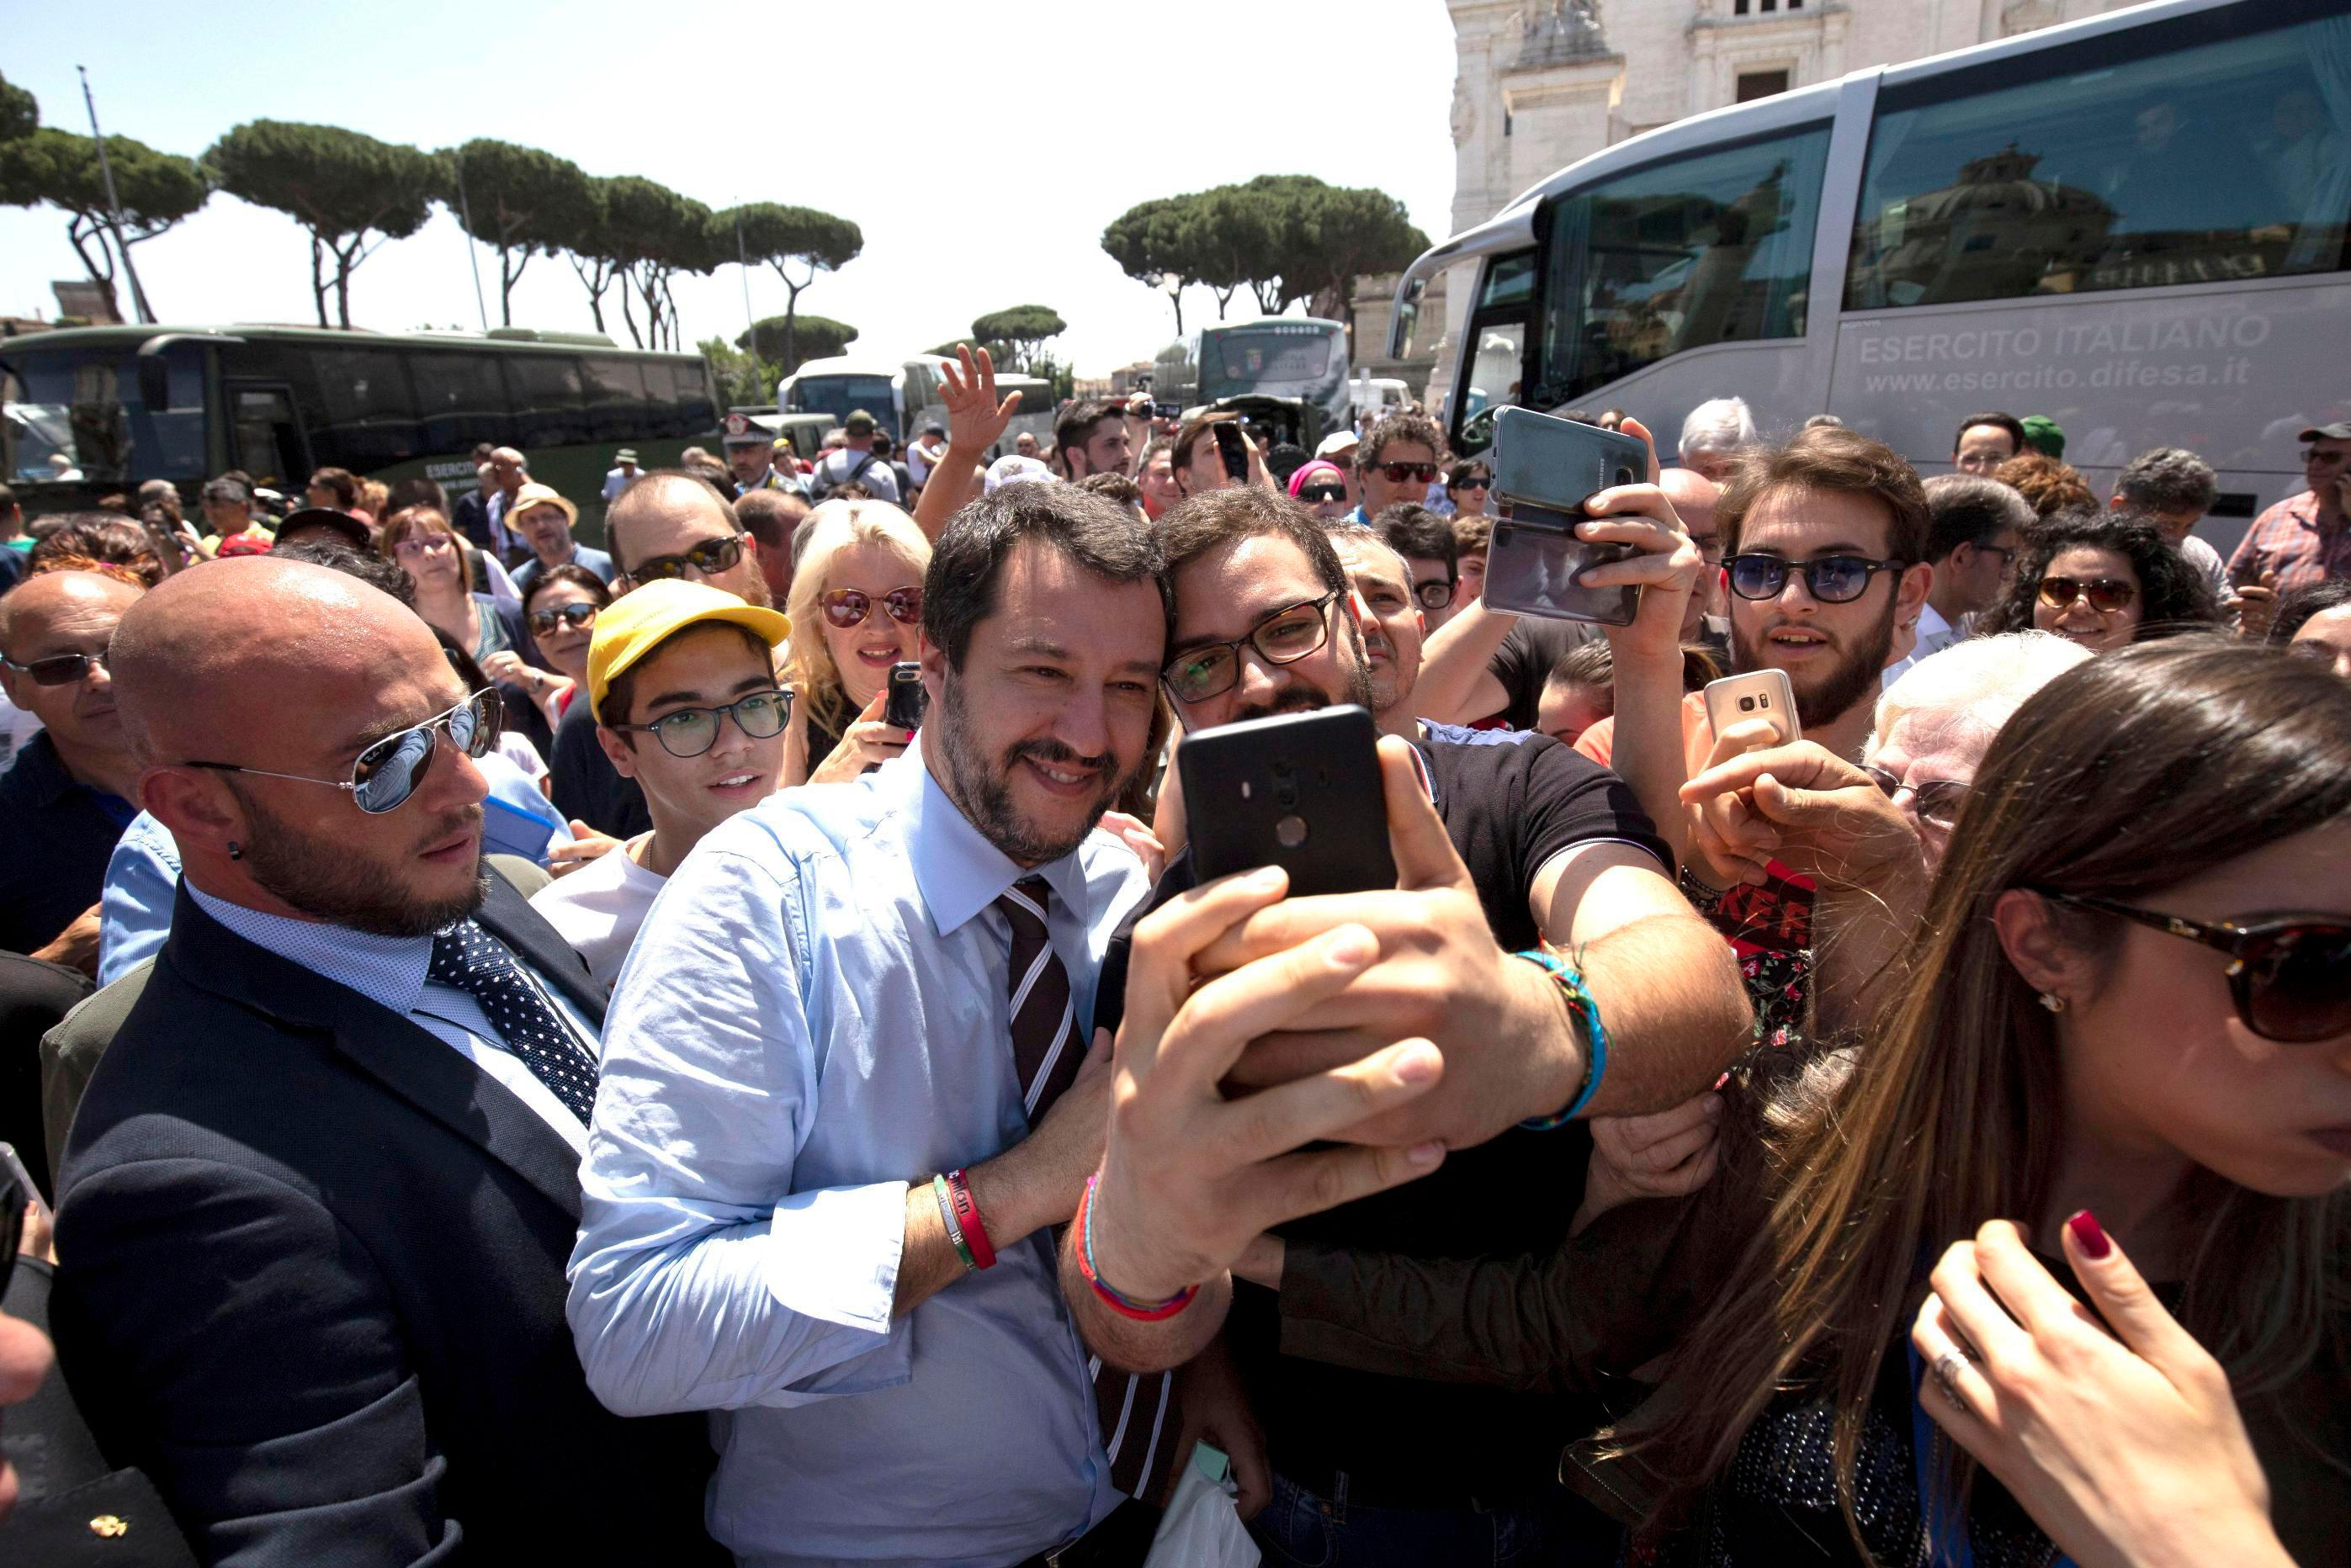 Leader of the League party and Italian Interior Minister, Matteo Salvini, poses for a photo as he walks through the crowd on the occasion of celebrations for Italy's Republic Day, in Rome Saturday, June 2, 2018. (Claudio Peri/ANSA via AP)